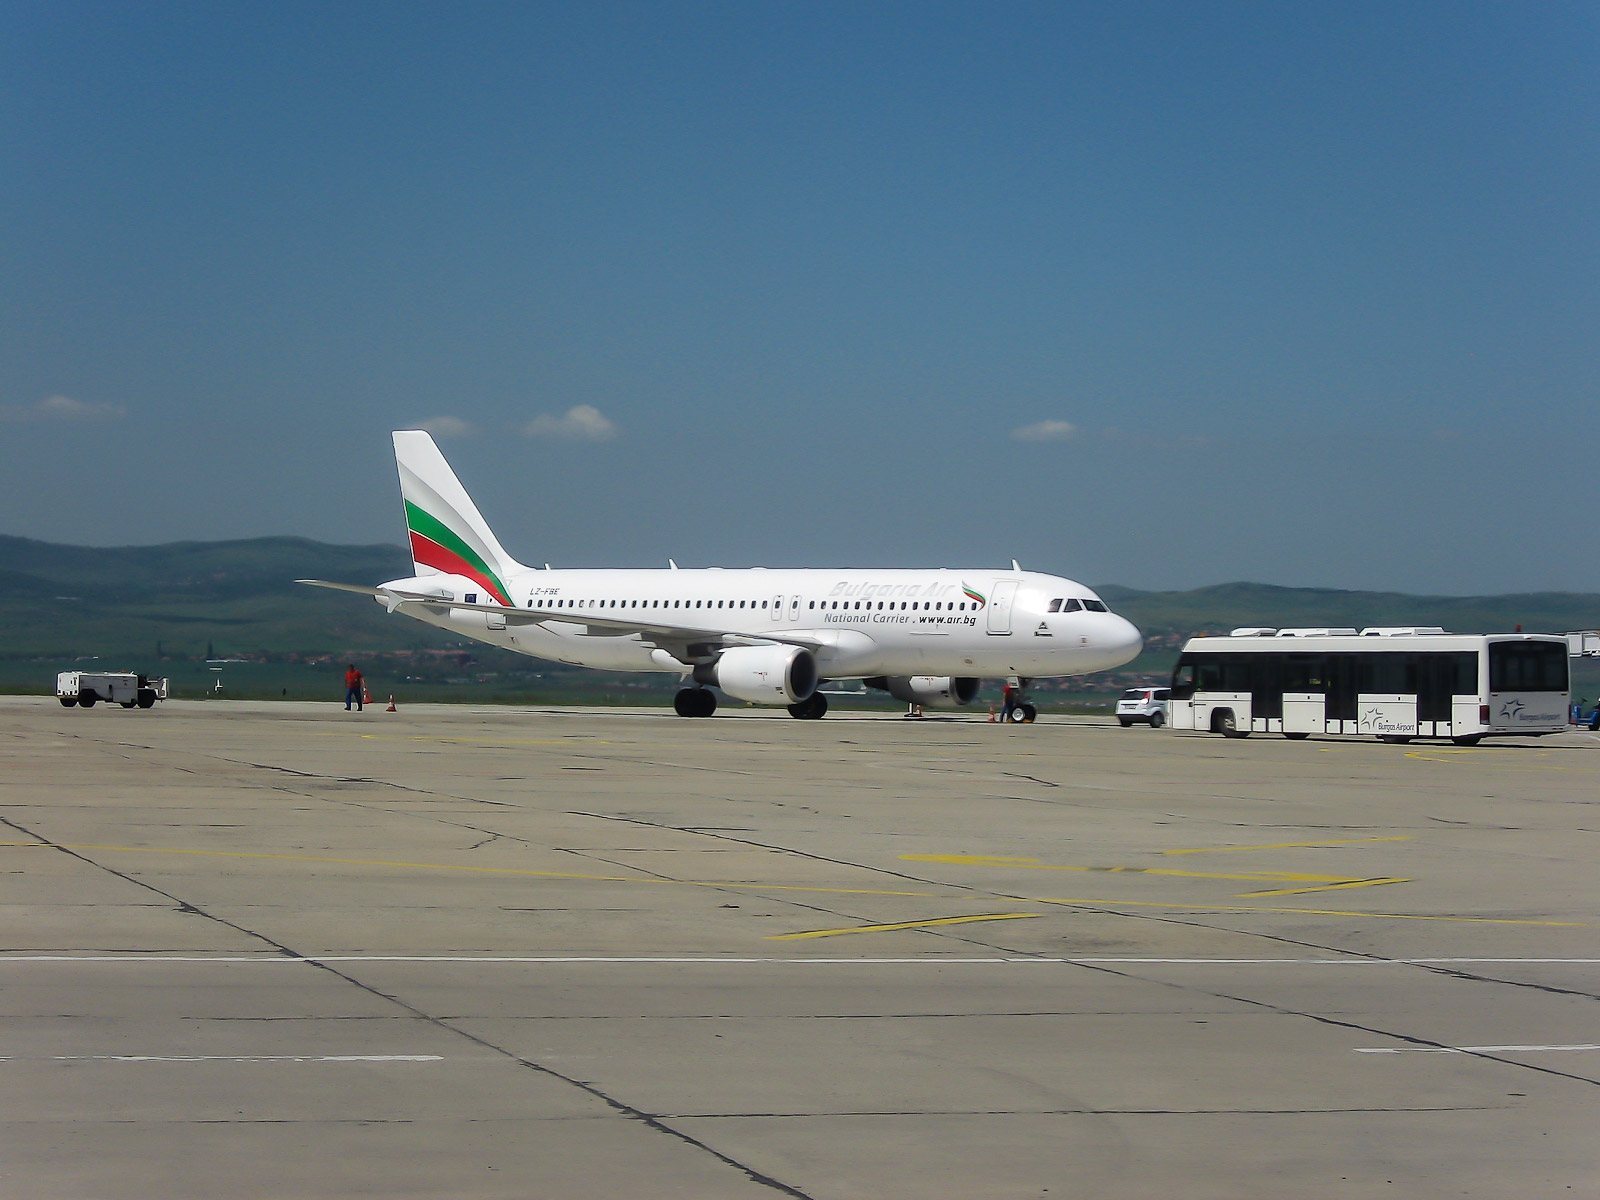 Airbus A320 Bulgaria Air at the Burgas airport